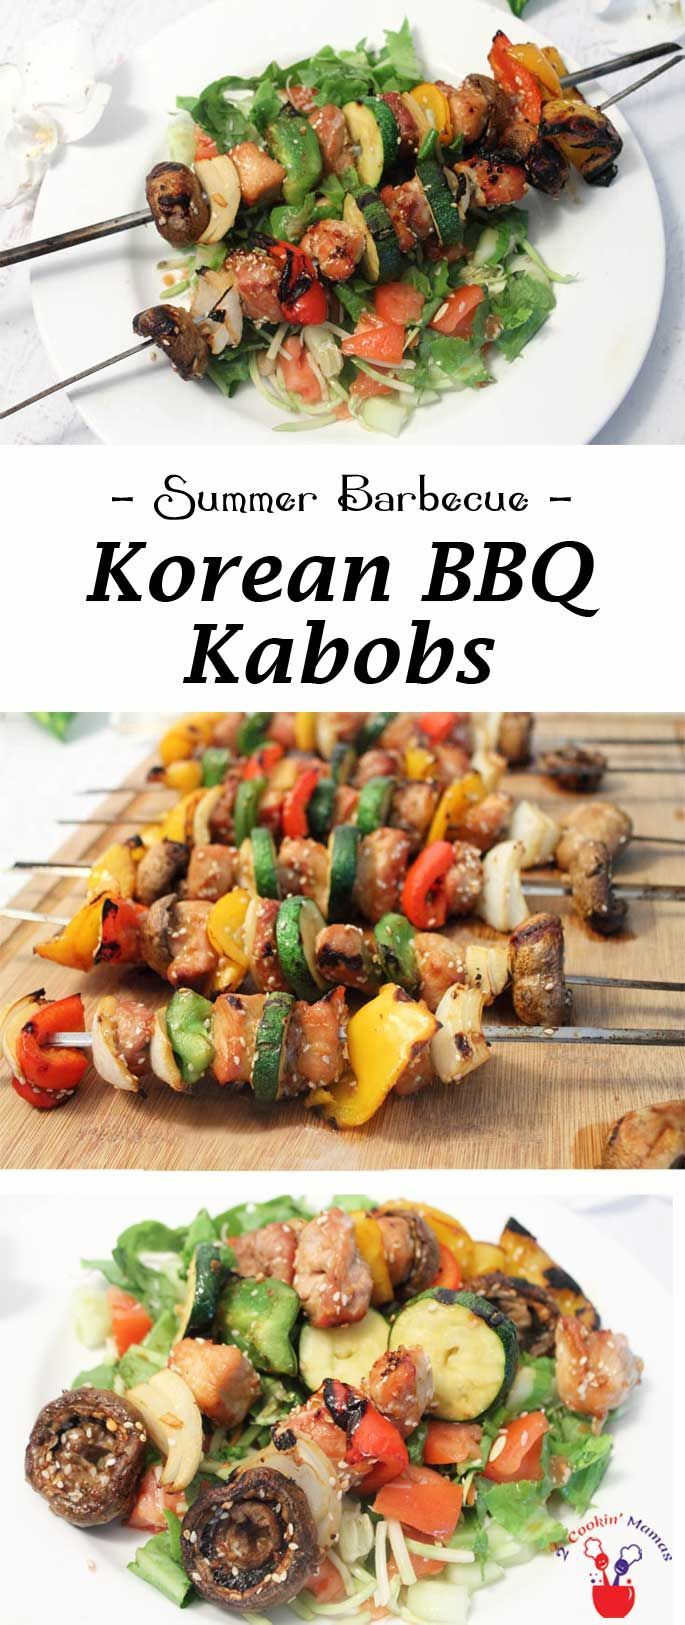 Nothing is easier or more delicious than Korean BBQ Kabobs. Choose your favorite meat & veggies, marinate, then grill. Dinner in 30! via @2CookinMamas